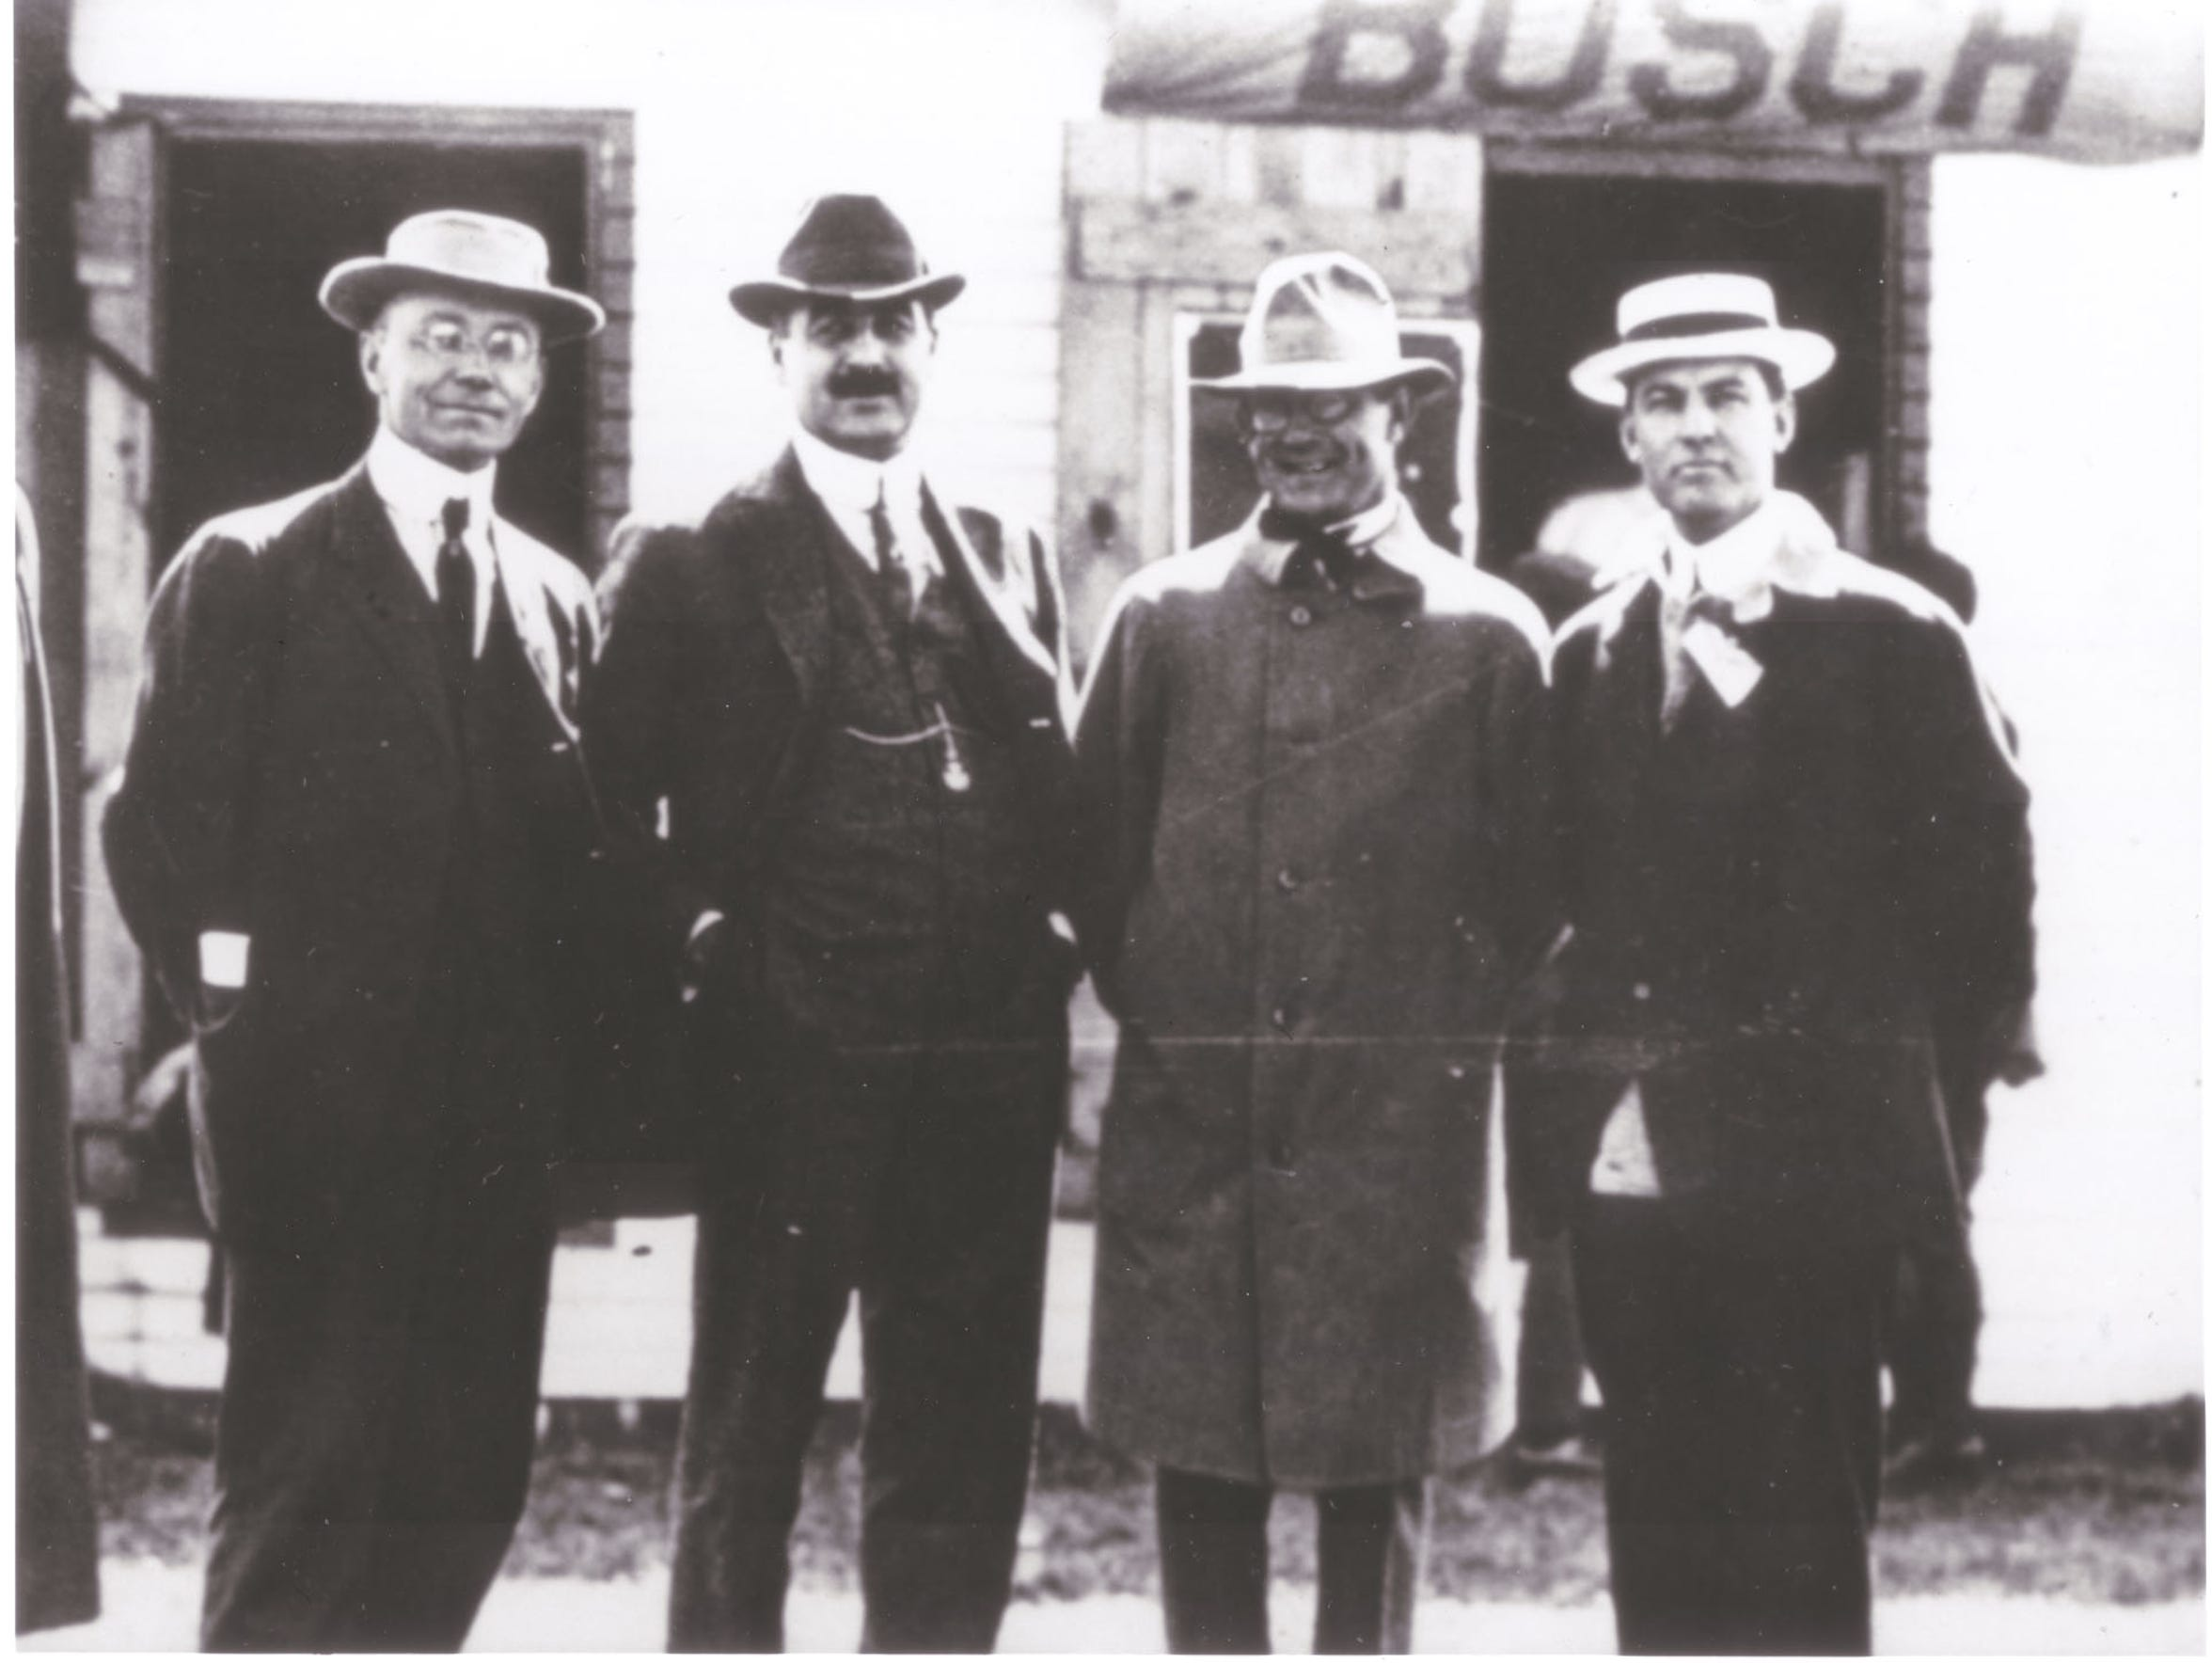 The only known photograph of the original four investors